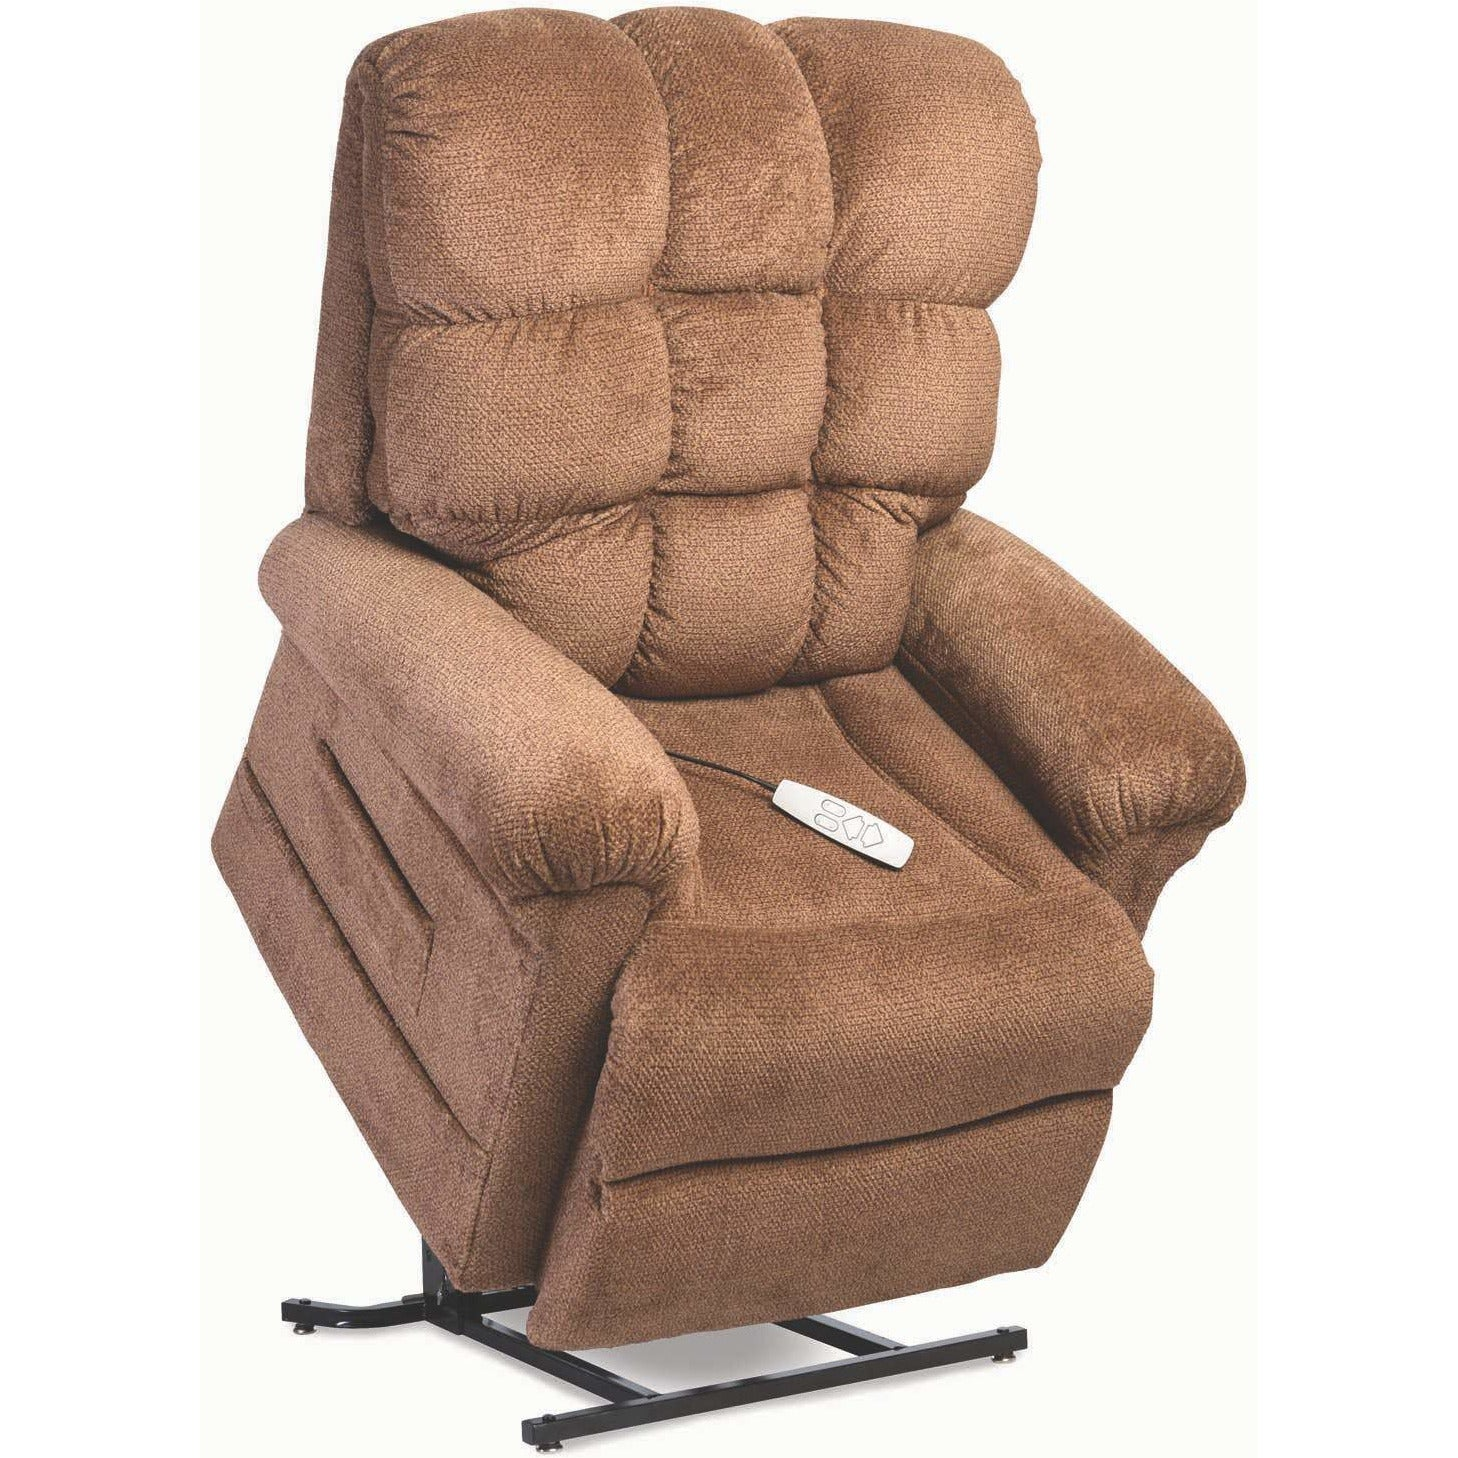 Infinite Position Reclining Lift Chair - Nutmeg